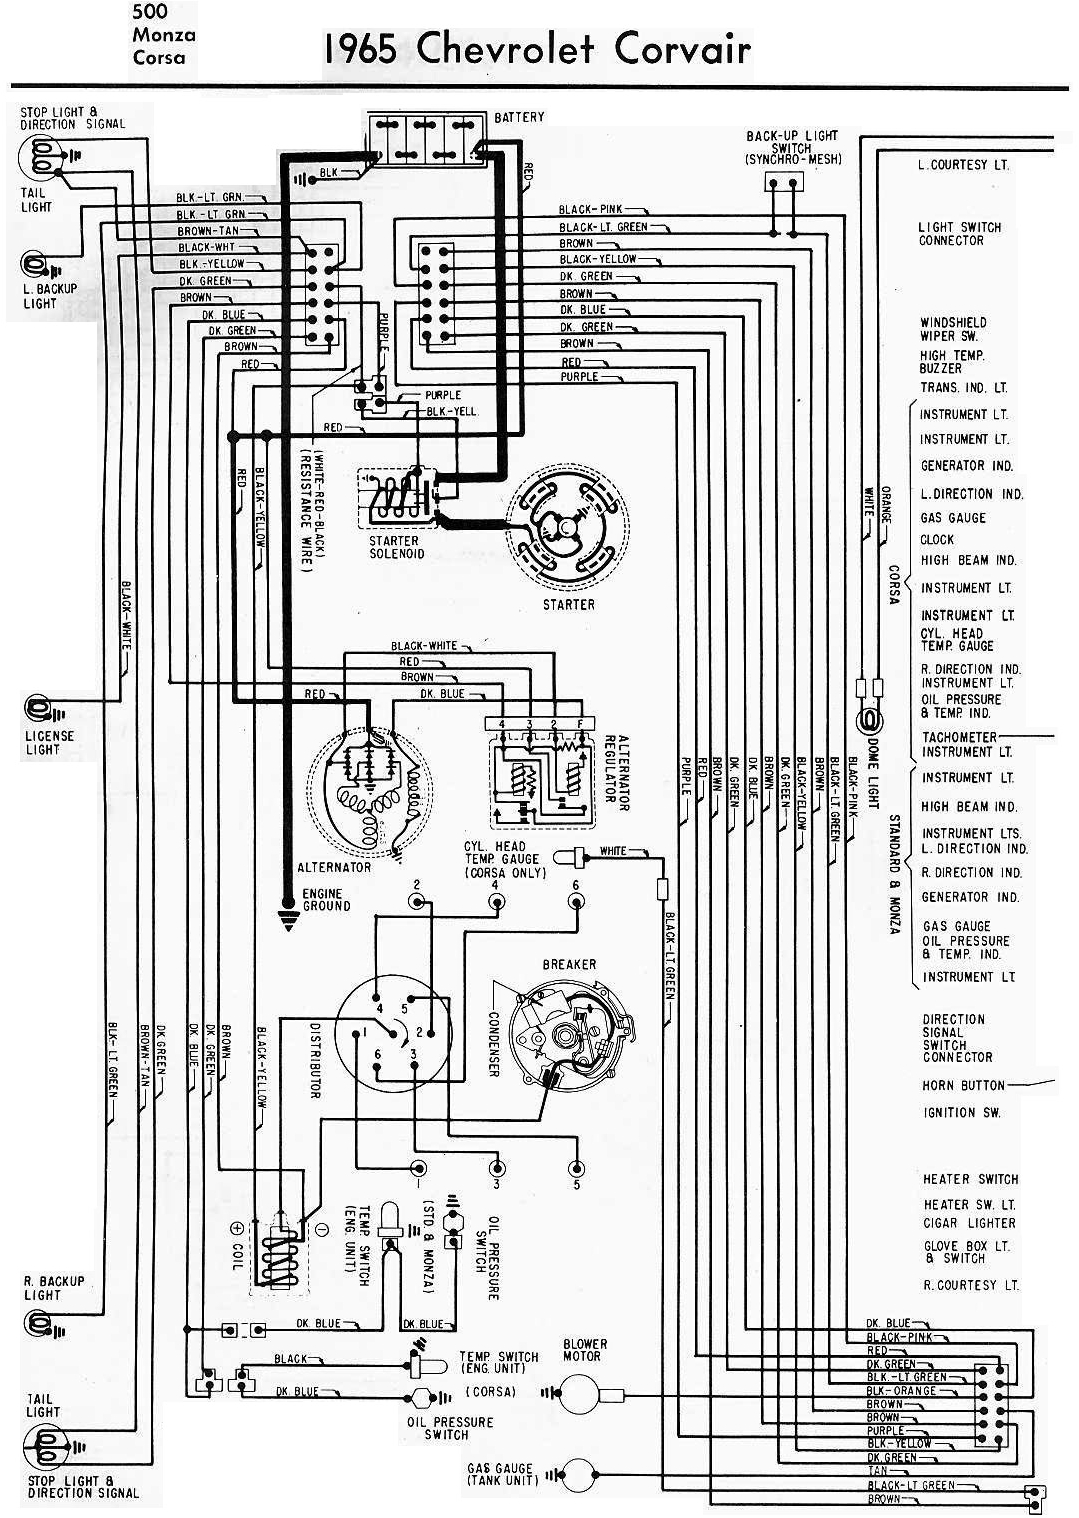 1965+Chevrolet+Corvair+Electrical+Wiring+Diagram 1965 chevrolet corvair electrical wiring diagram all about 1965 corvair wiring diagram at nearapp.co